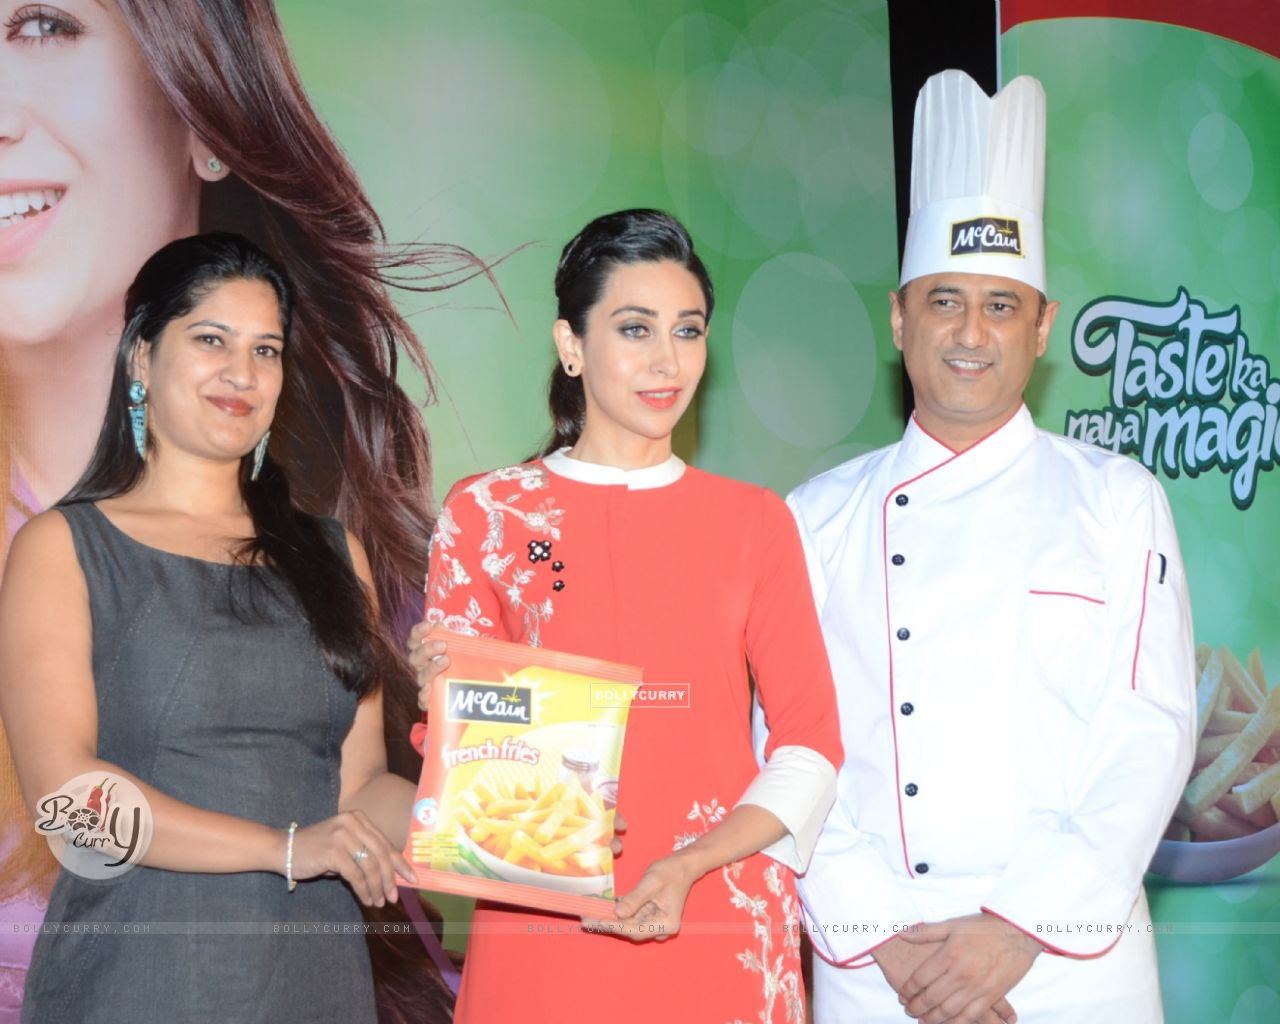 Karisma Kapoor Sees Tomorrow's Moms Enjoying More Snacking Occasion with McCain (388012) size:1280x1024